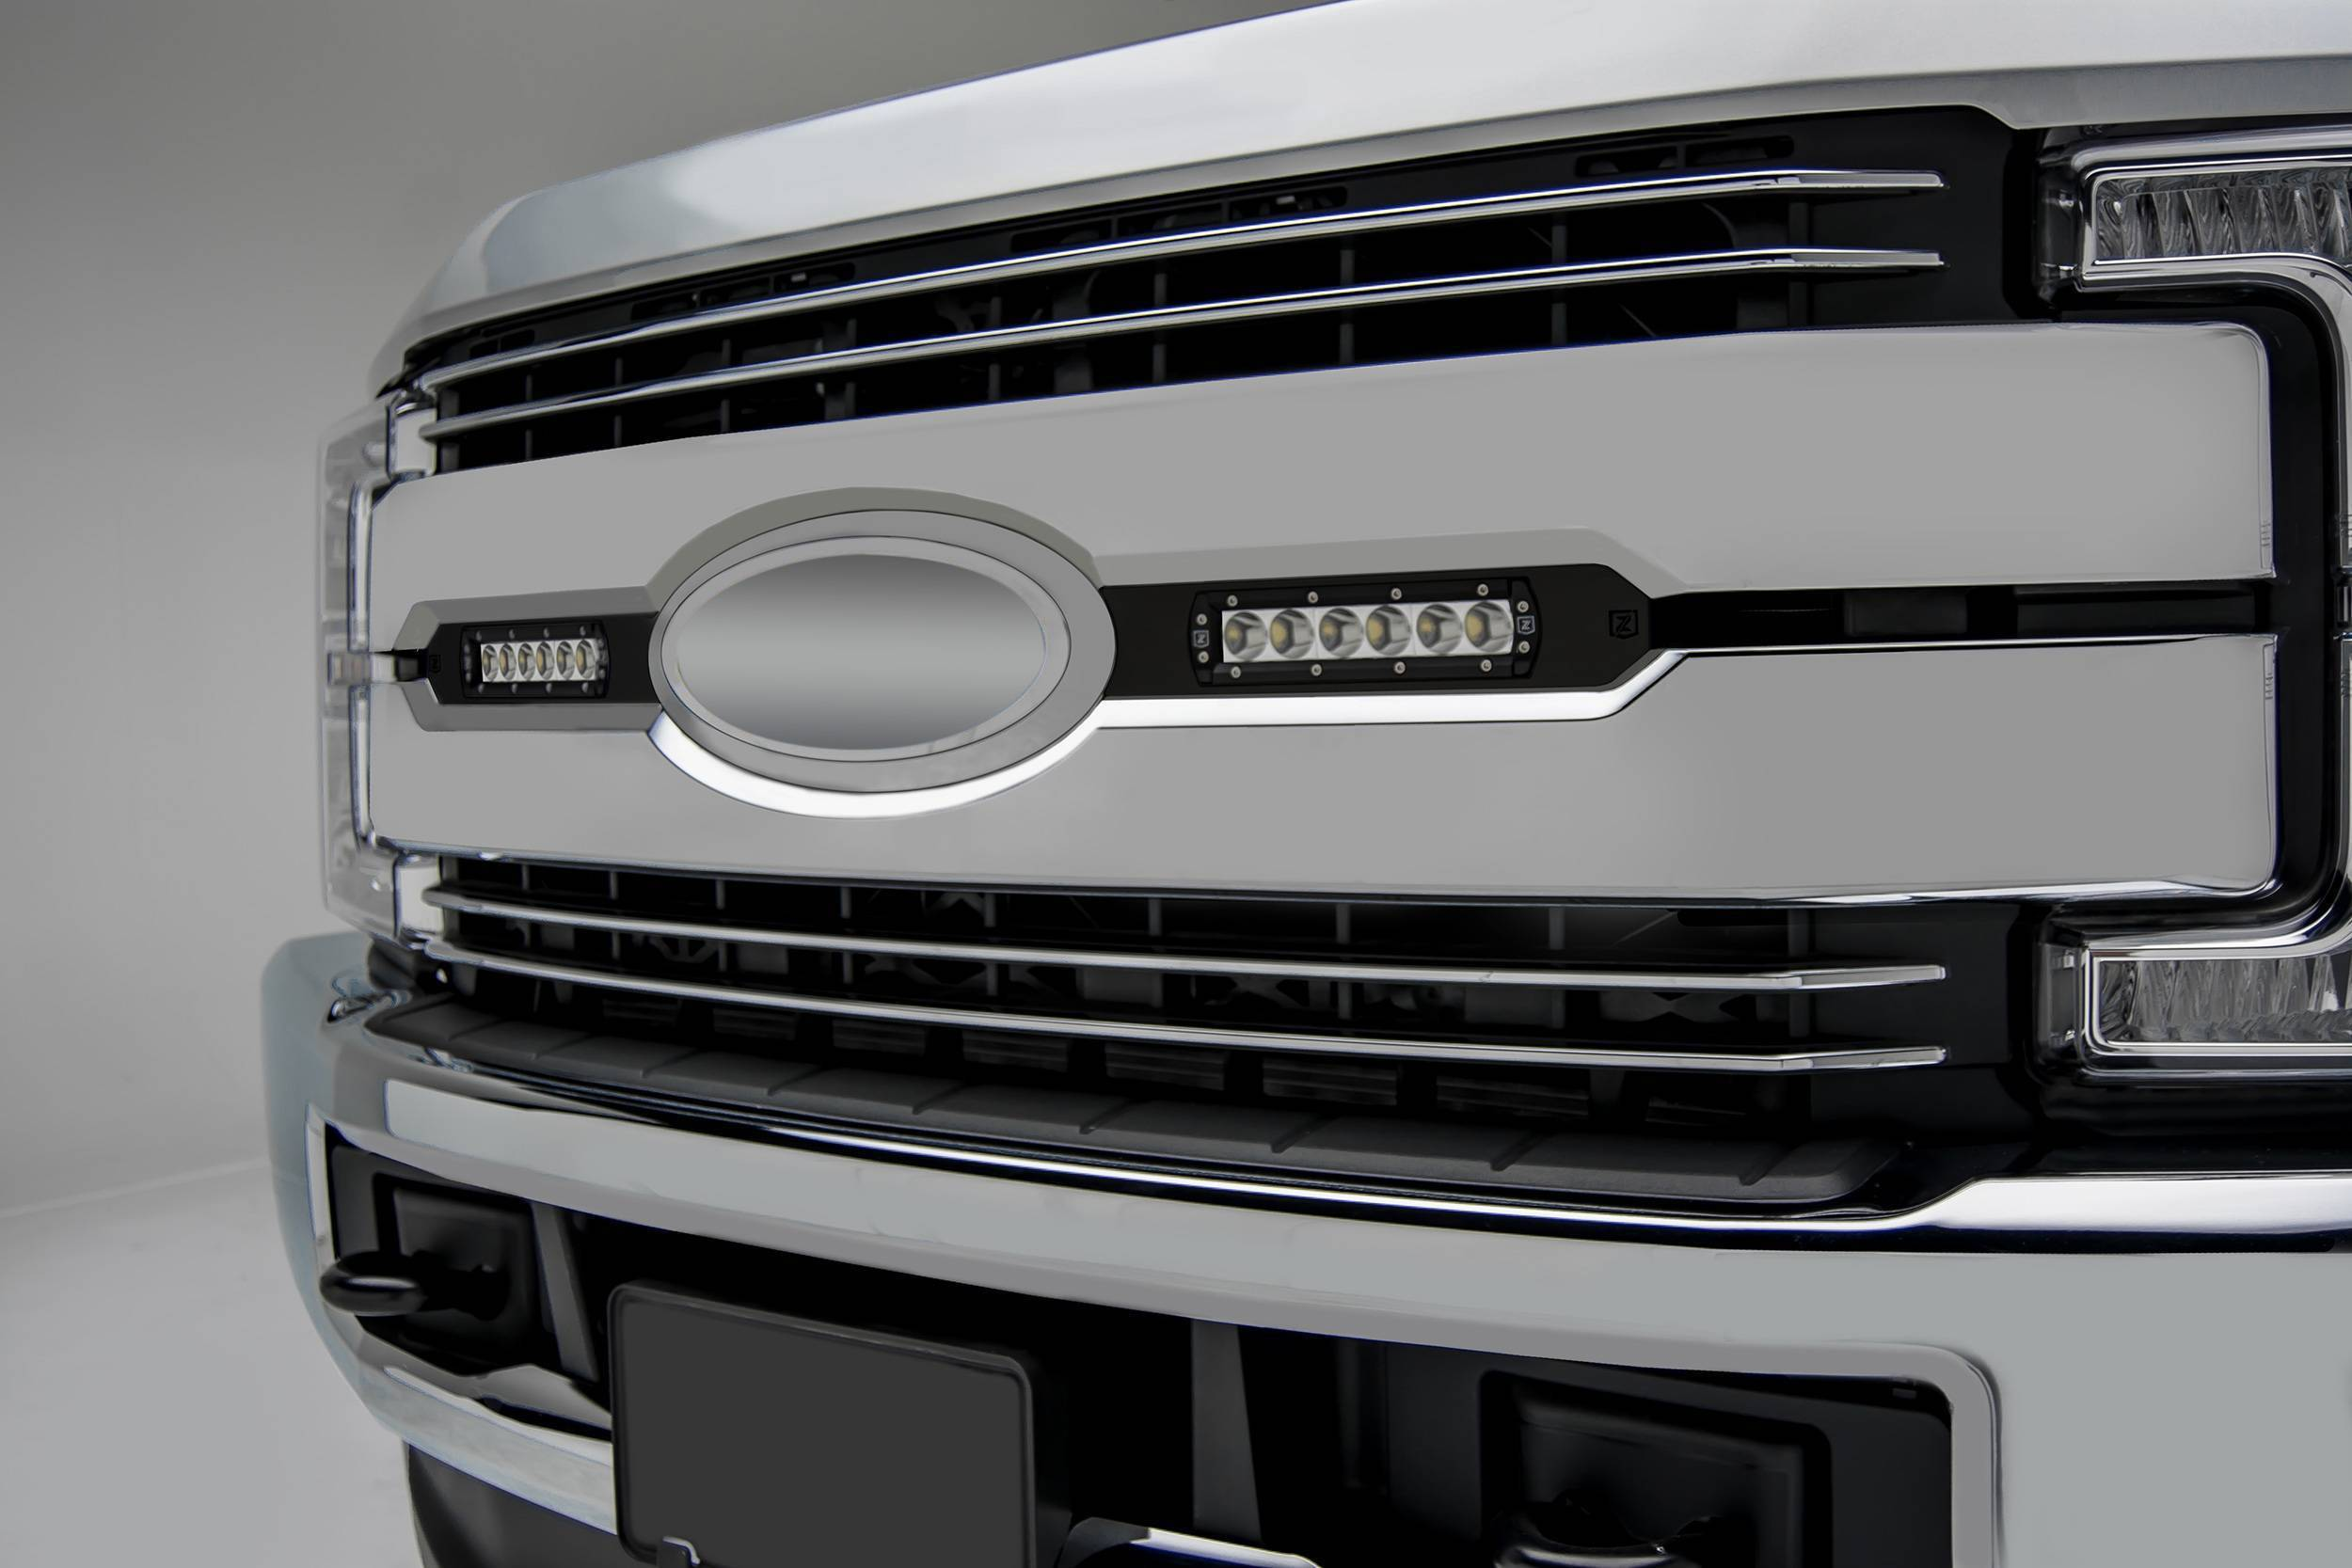 ZROADZ OFF ROAD PRODUCTS - 2017-2019 Ford Super Duty Lariat, King Ranch OEM Grille LED Kit with (2) 6 Inch LED Straight Single Row Slim Light Bars - PN #Z415471-KIT